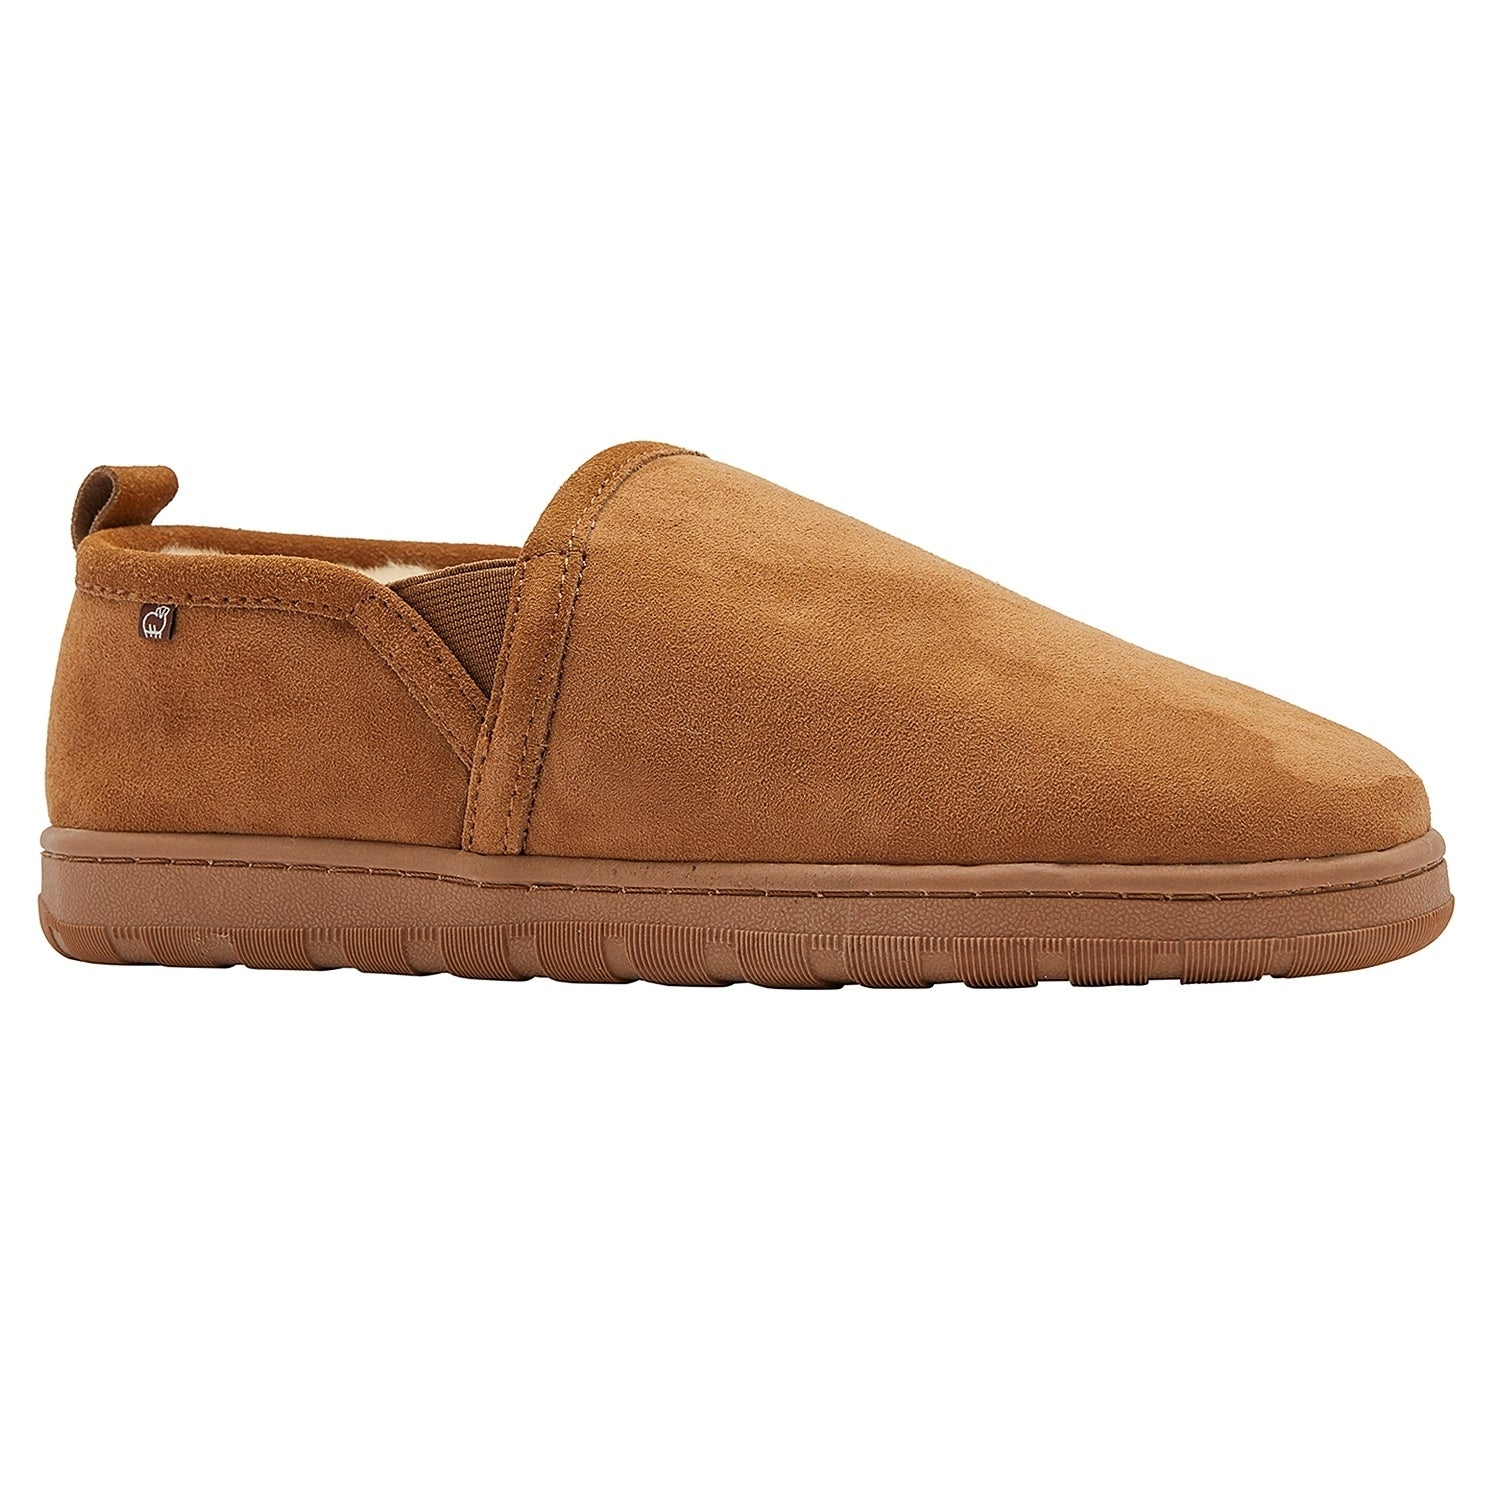 9e2fc5ba883daf Shop Lamo Mens Chestnut Doubleface Romeo Slipper - Free Shipping Today -  Overstock - 27126250